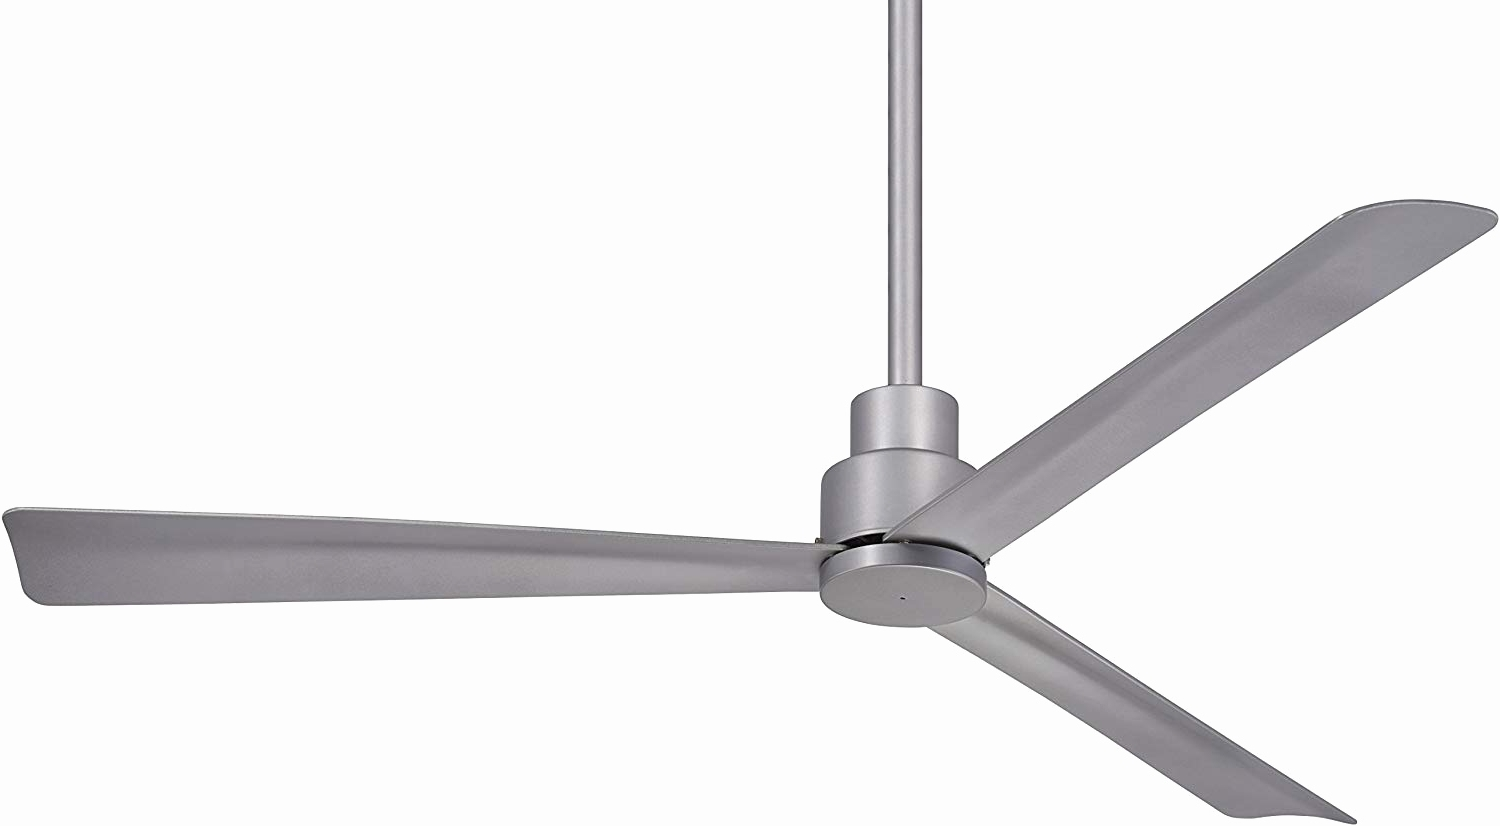 Aftu For Outdoor Ceiling Fans At Amazon (View 14 of 21)